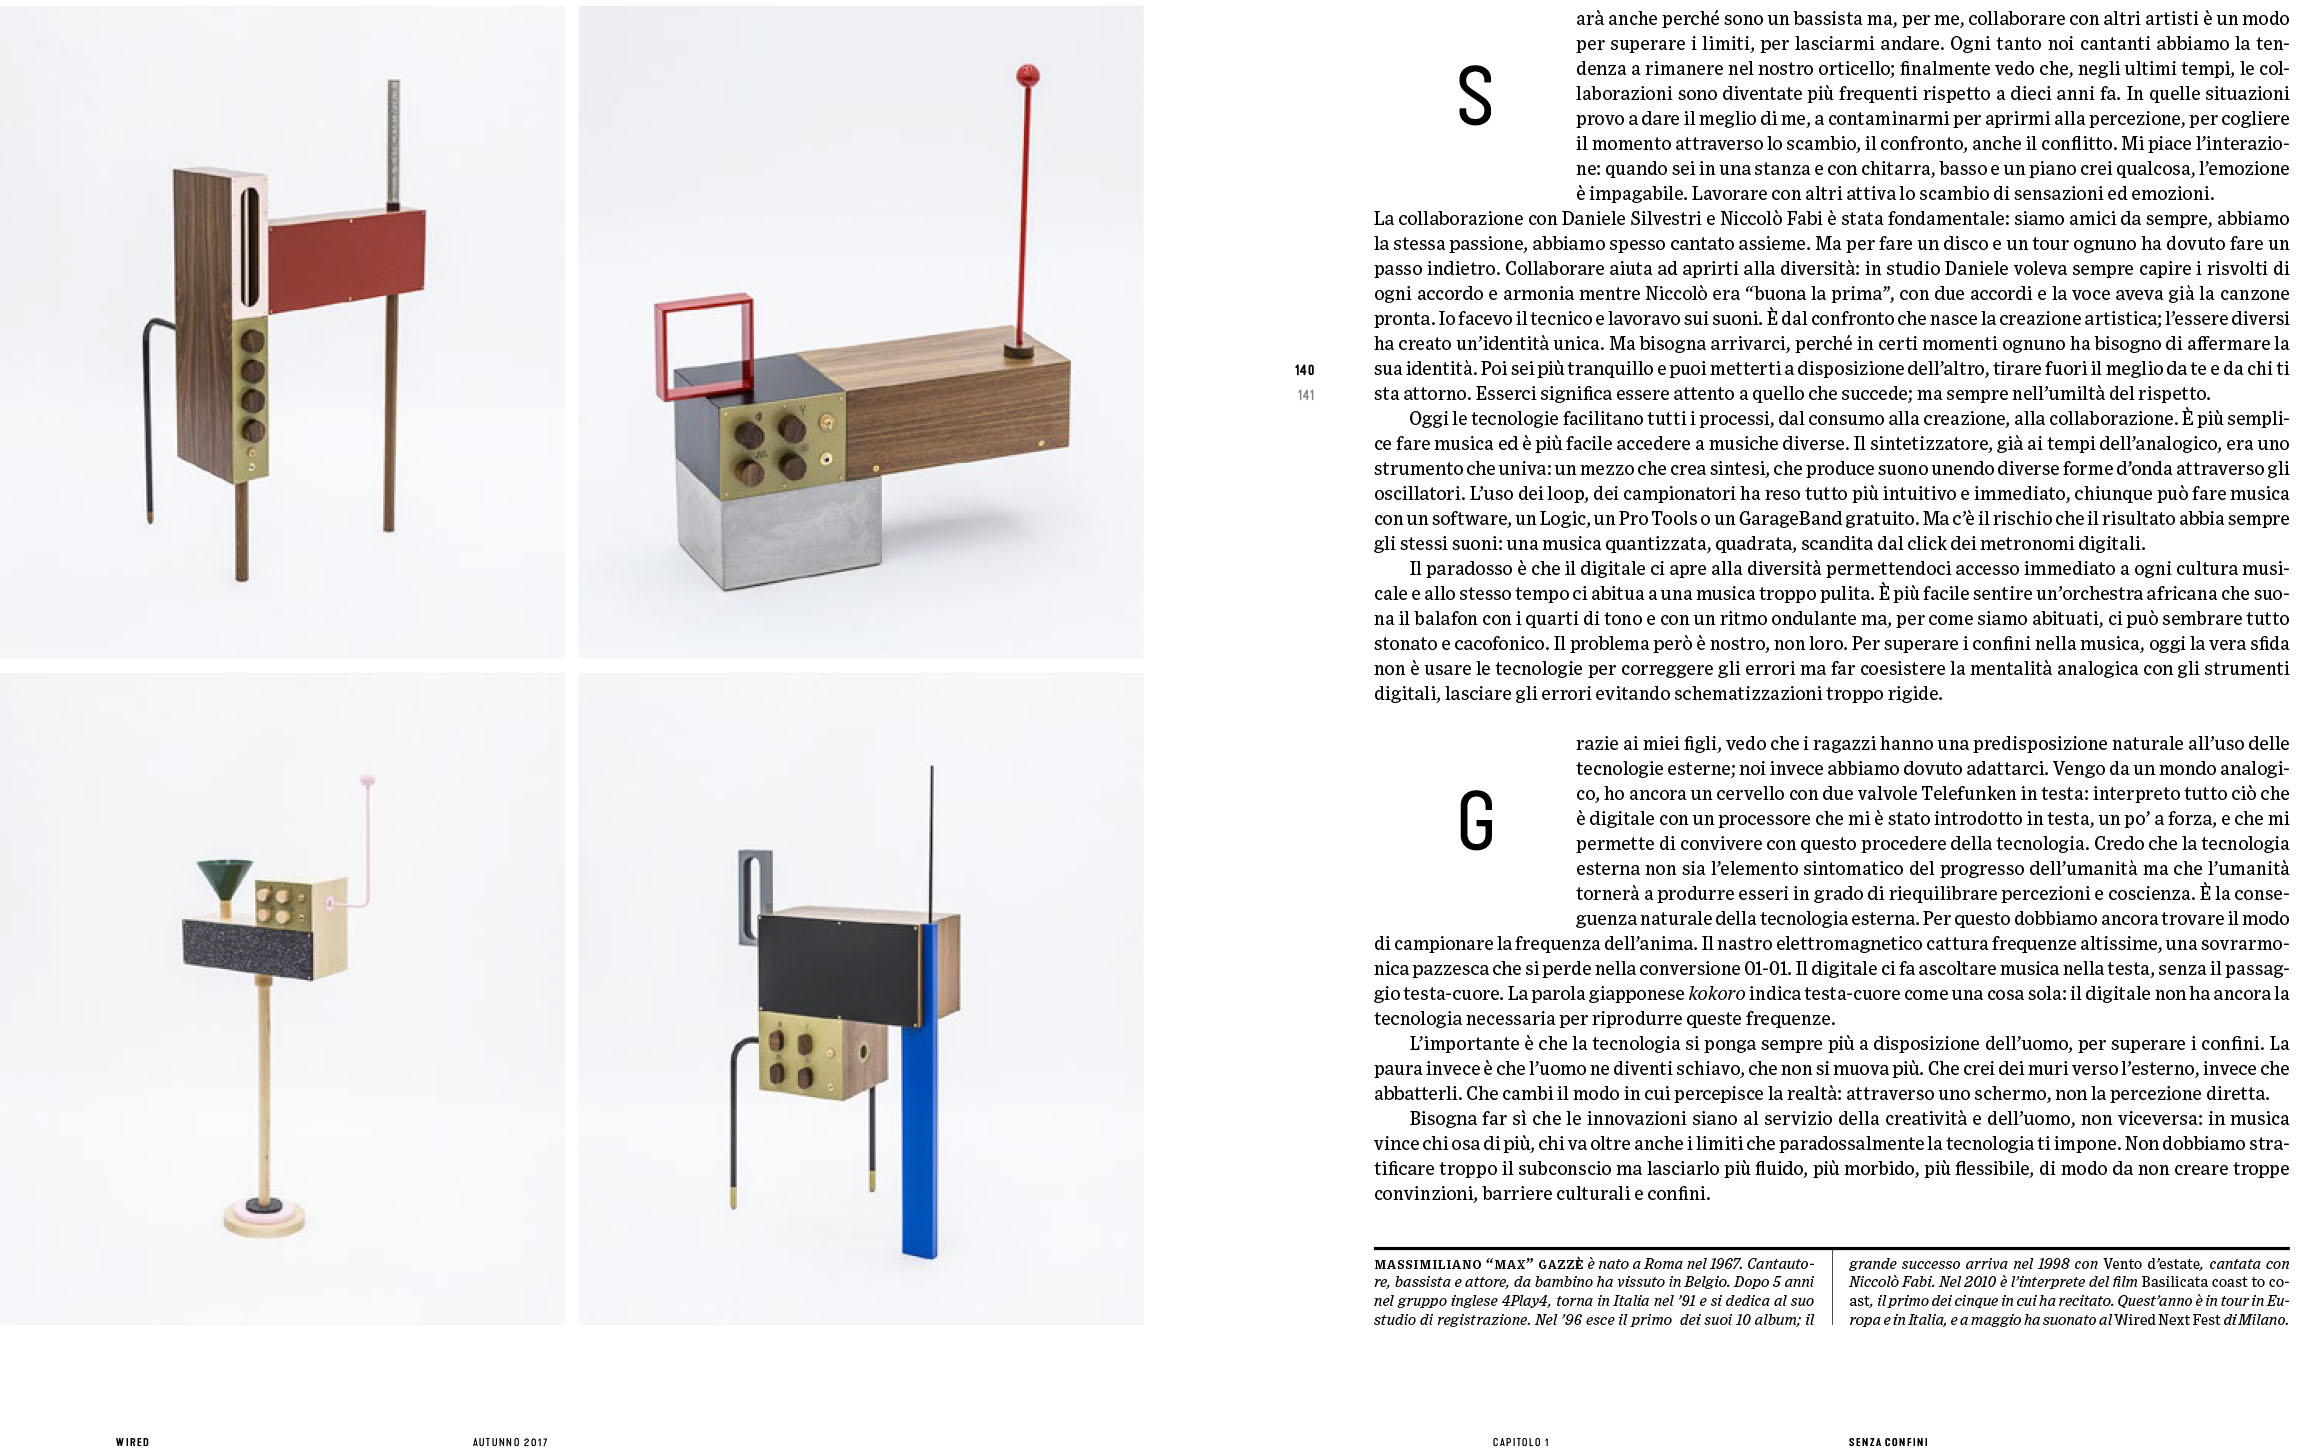 wired italy spread 4.jpg